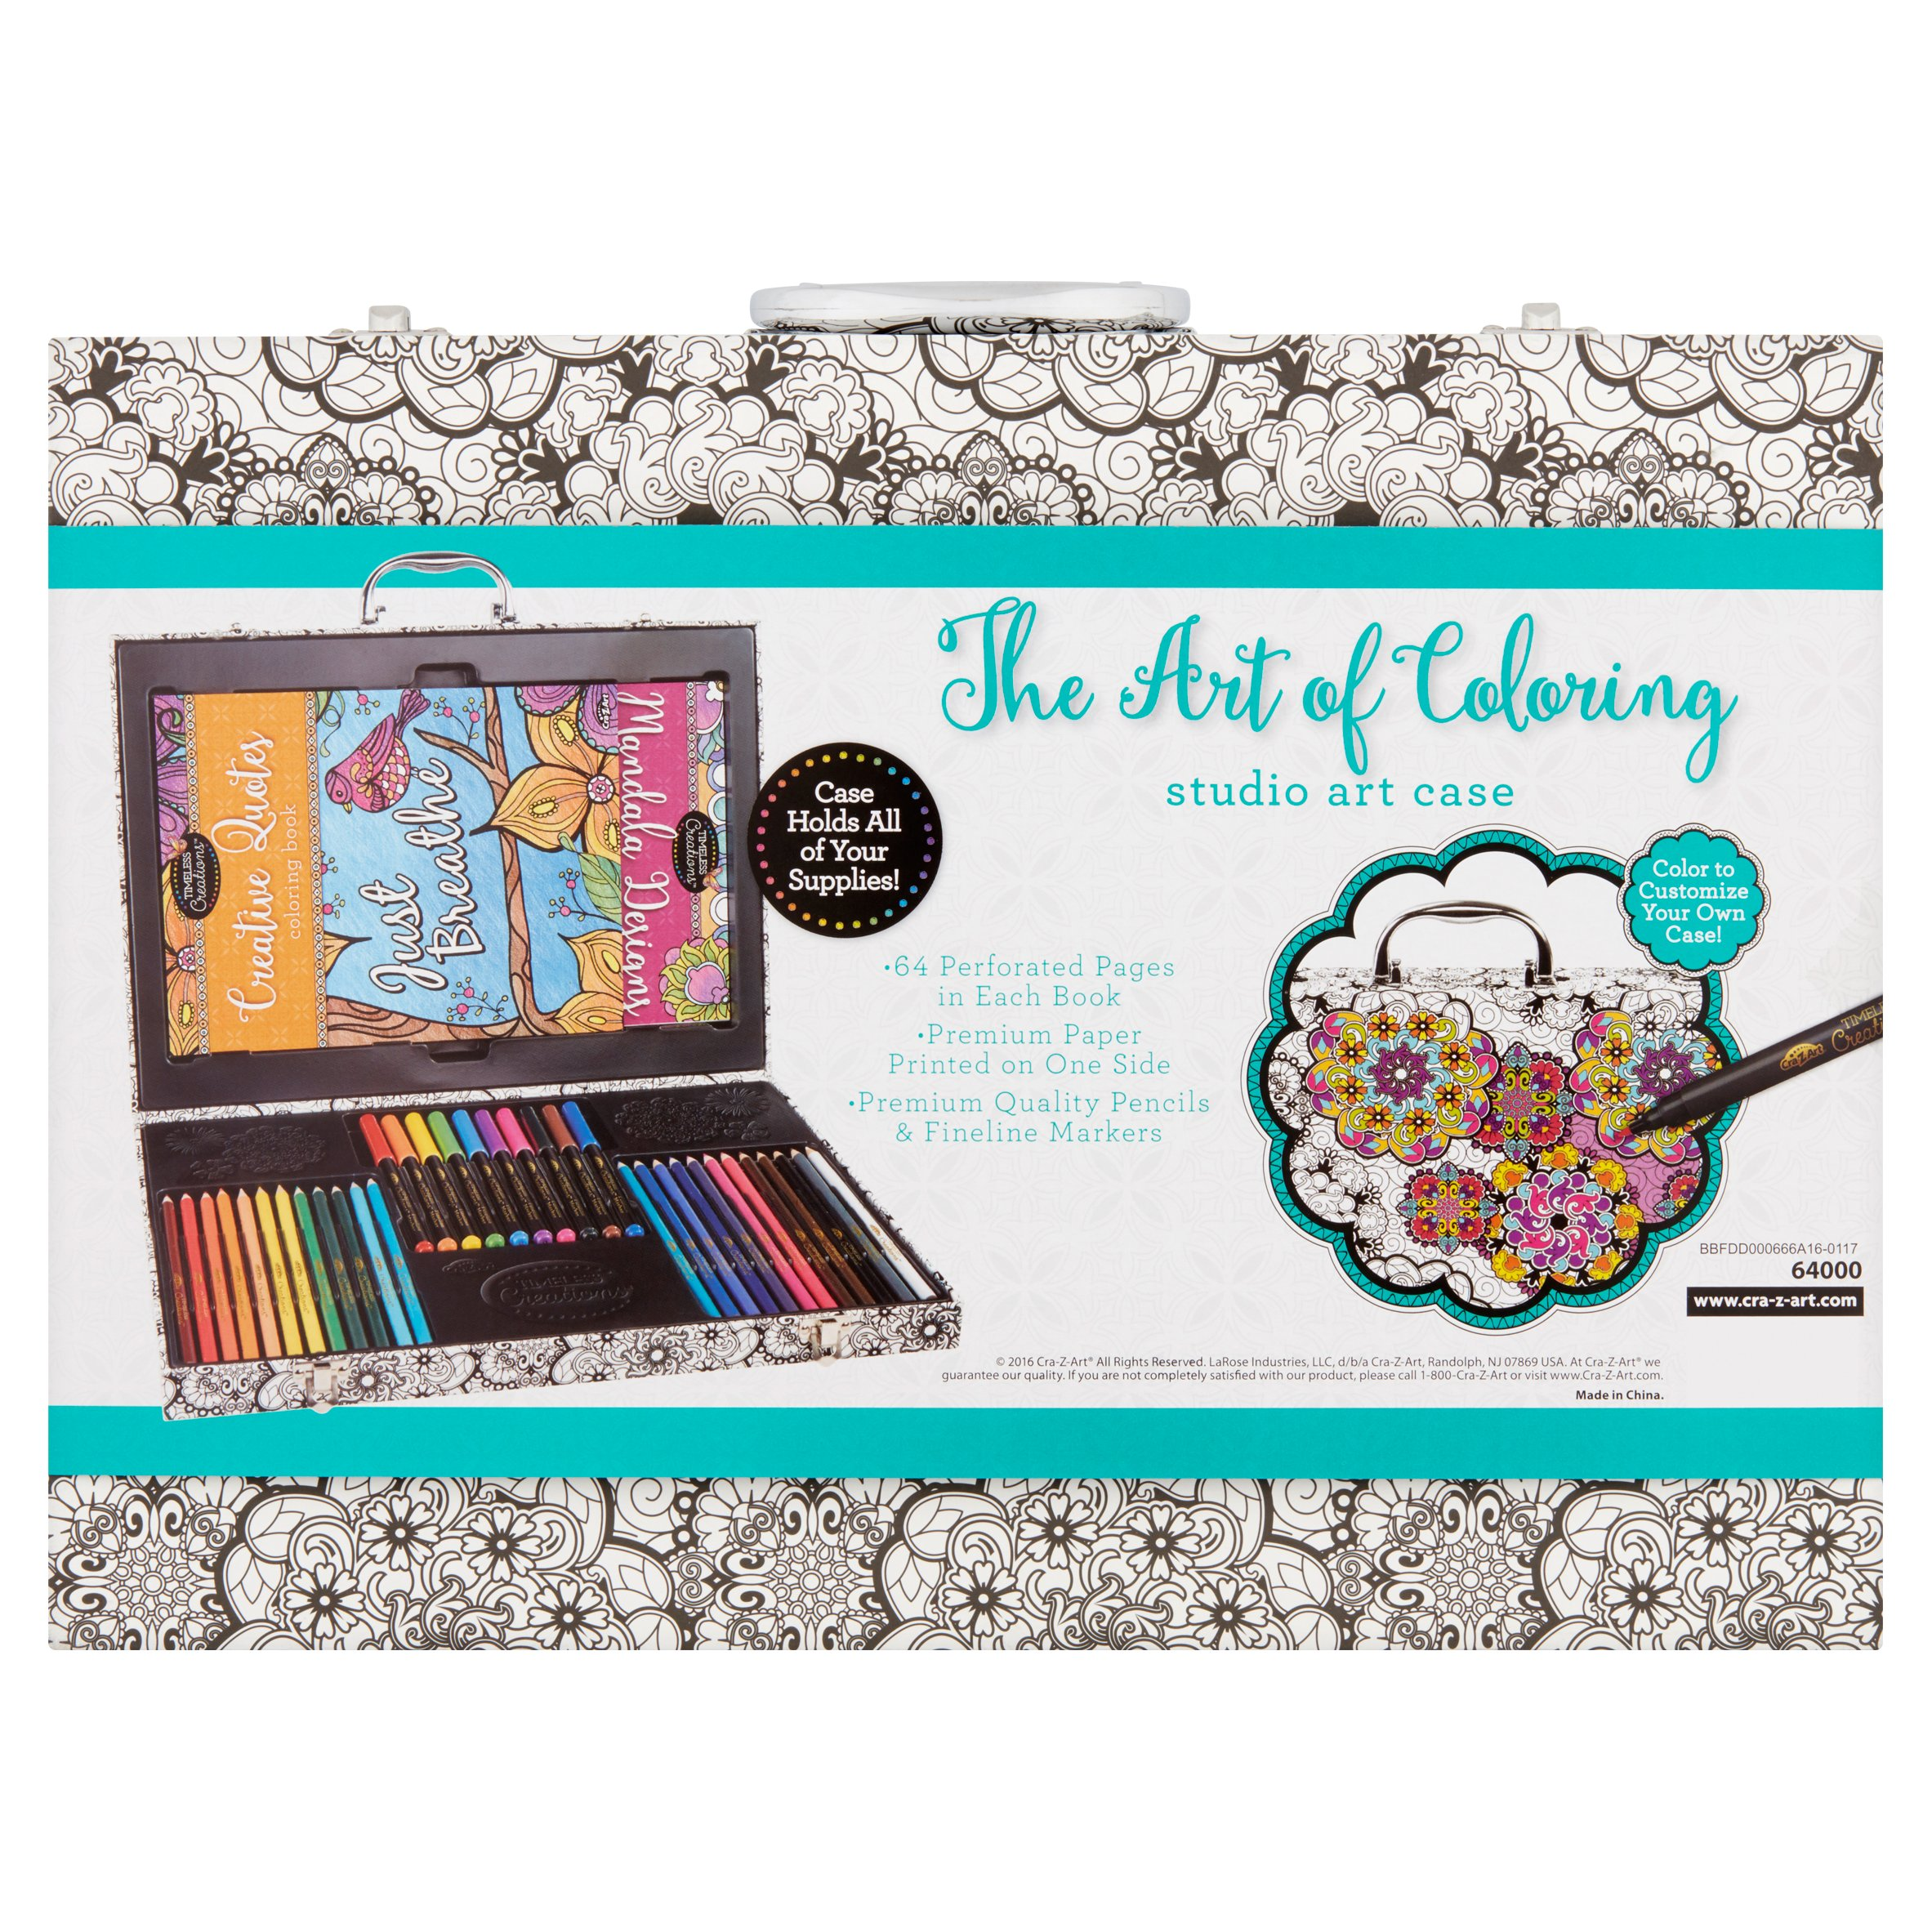 Cra-Z-Art Timeless Creations Art Of Coloring Adult Coloring Case ...